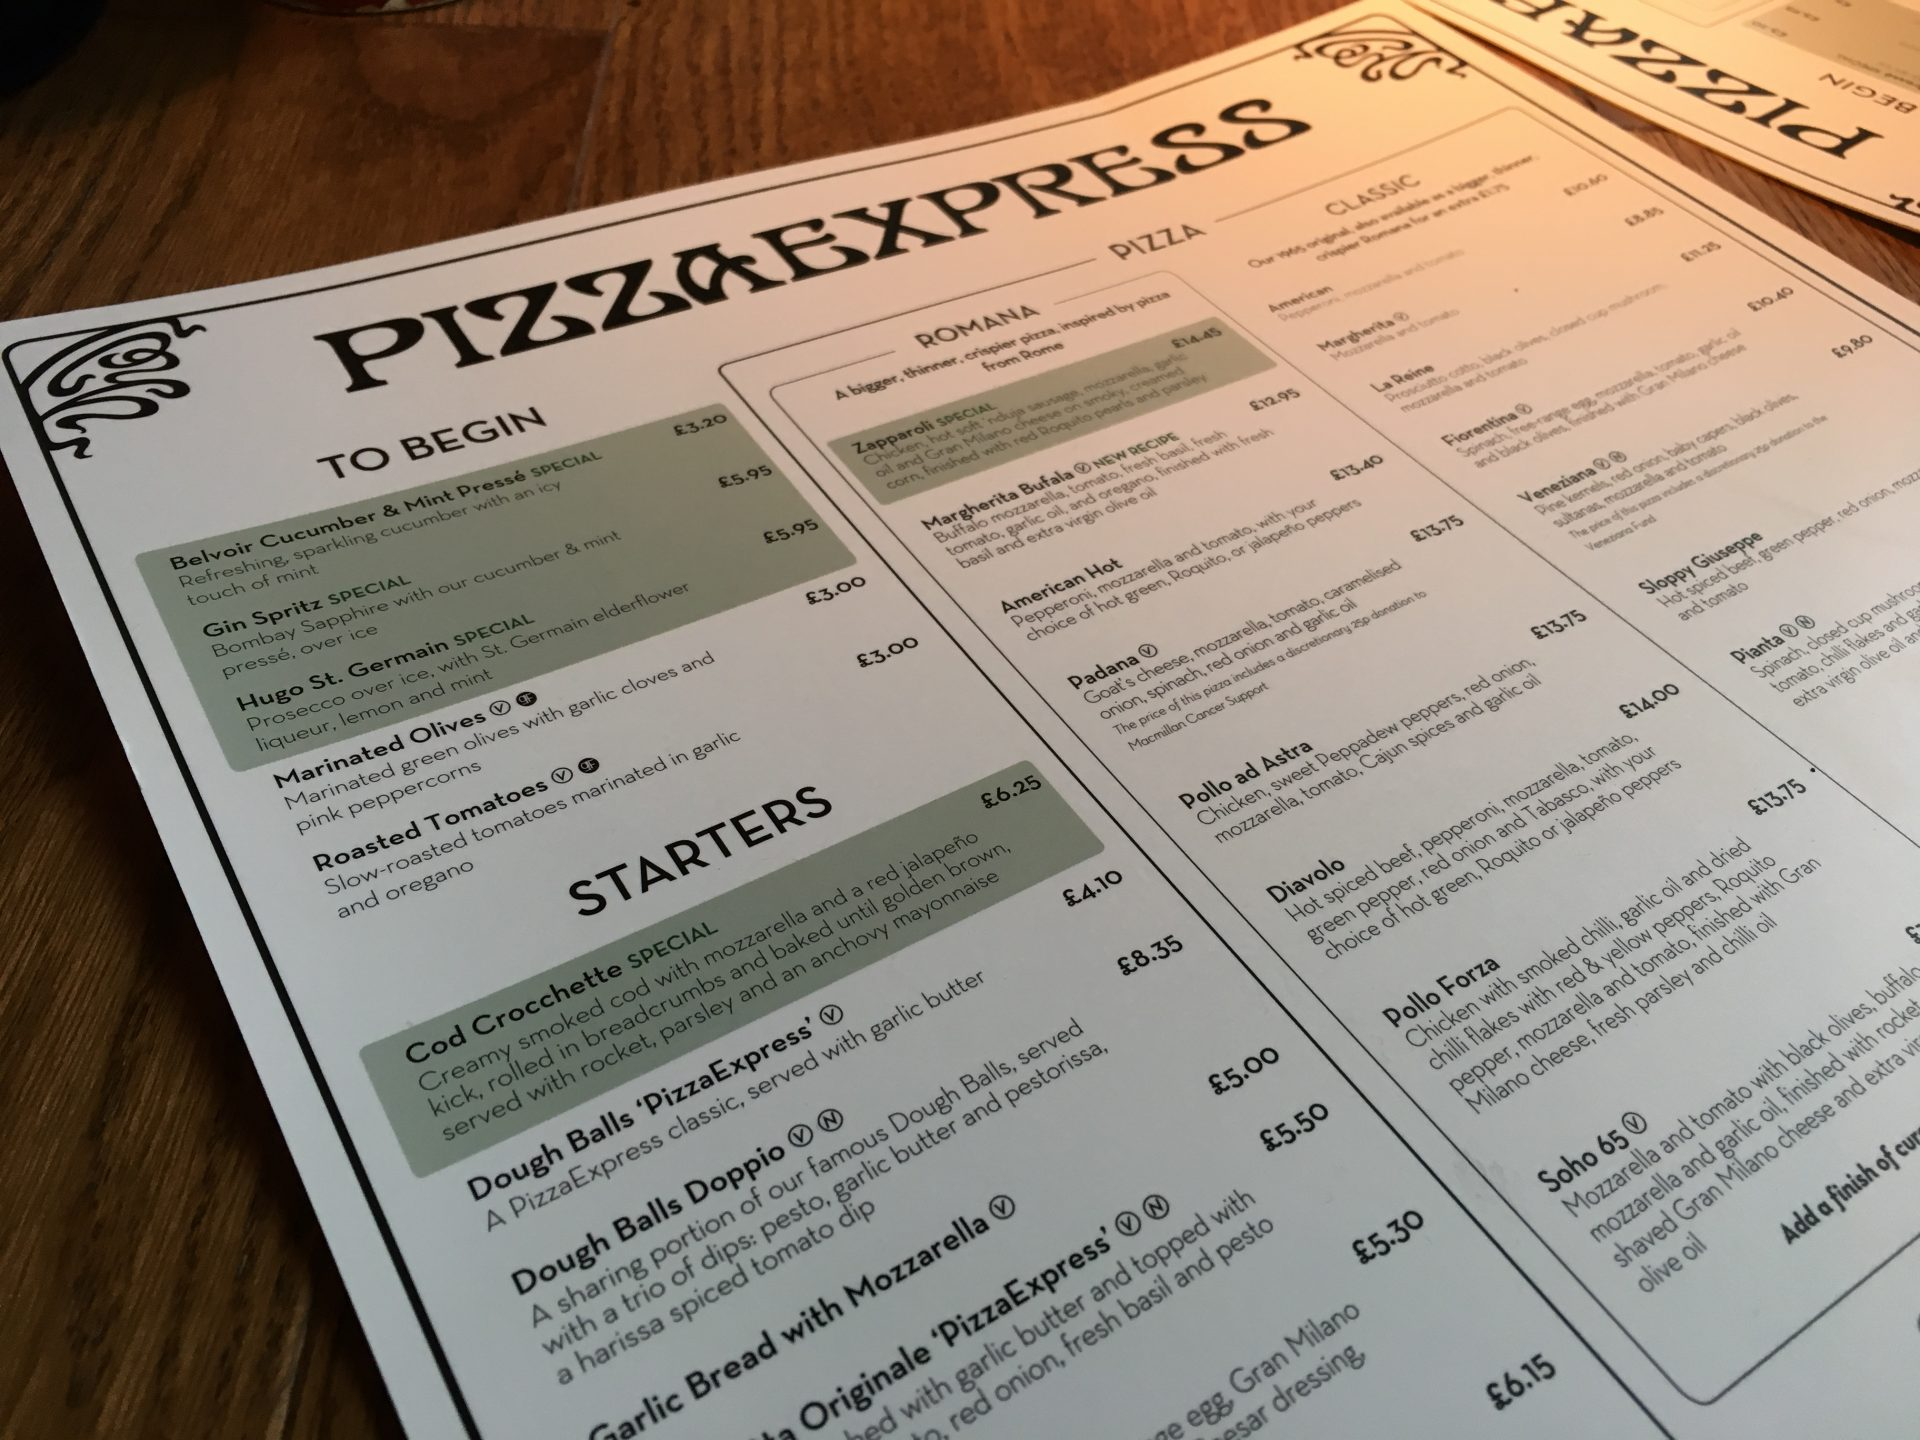 Pizza Express Spring menu